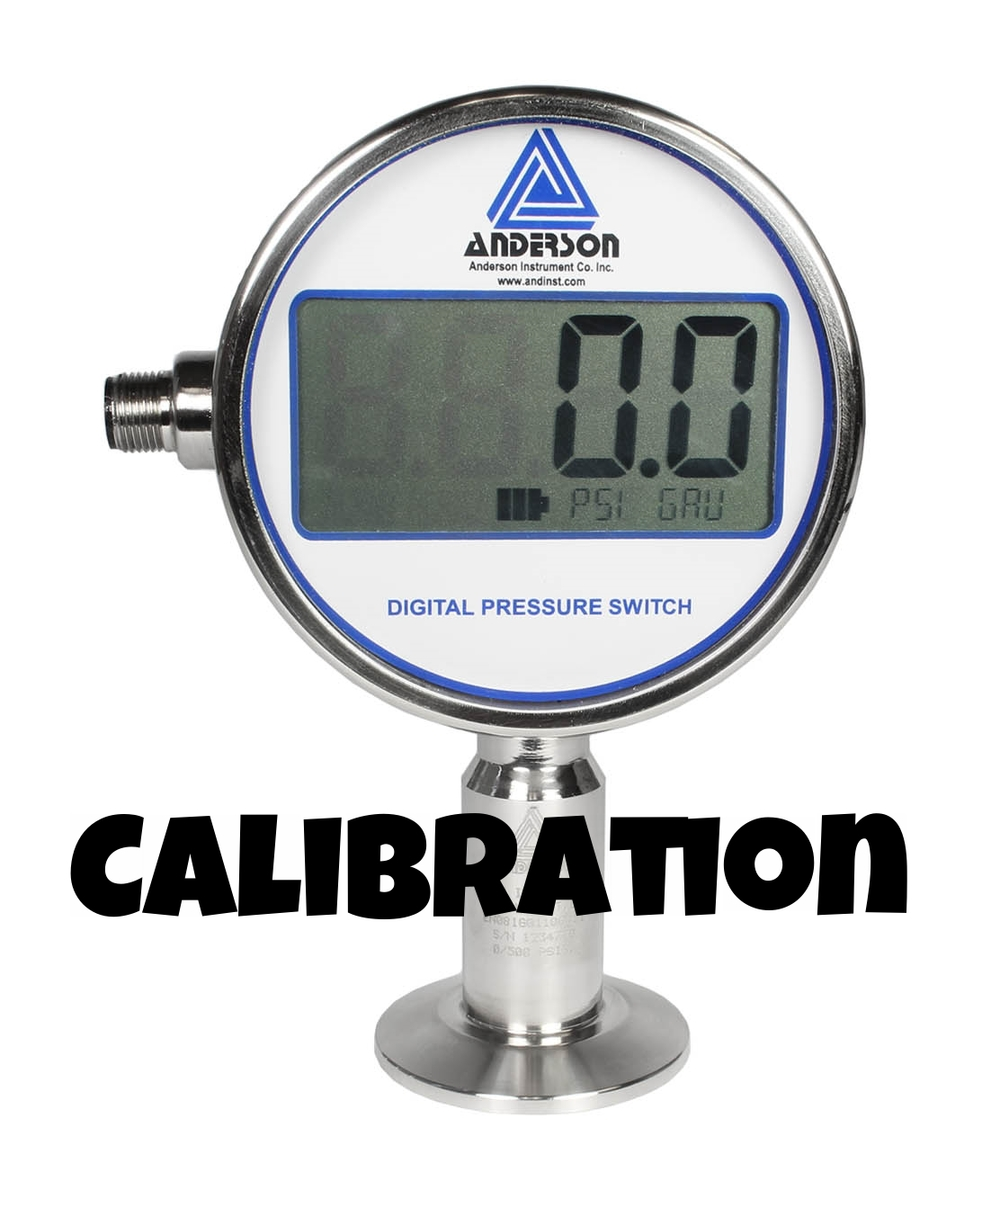 Calibration